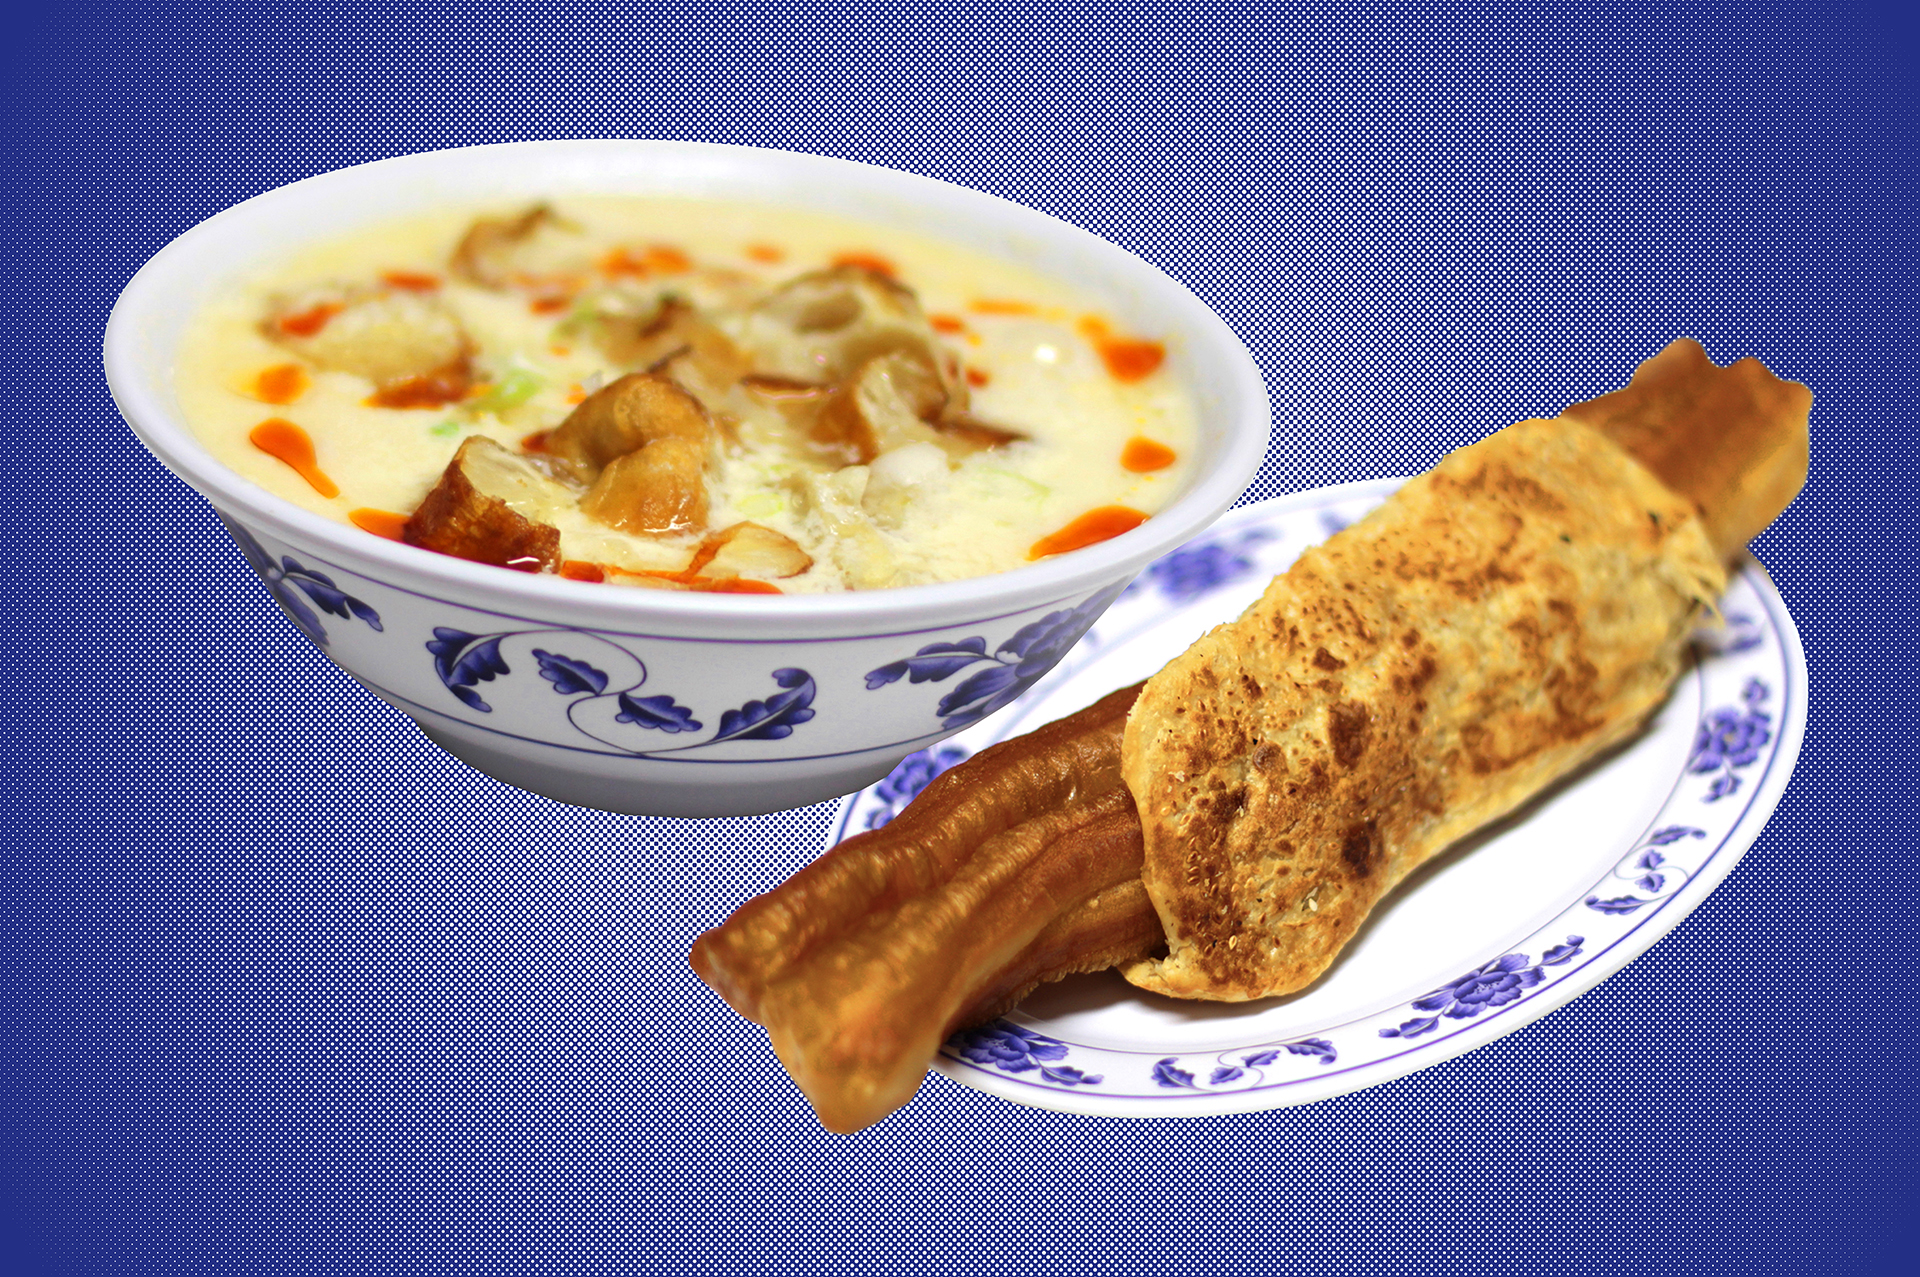 A bowl of savory soy milk and a sesame flatbread wrapped around a fried cruller, both against a blue background.